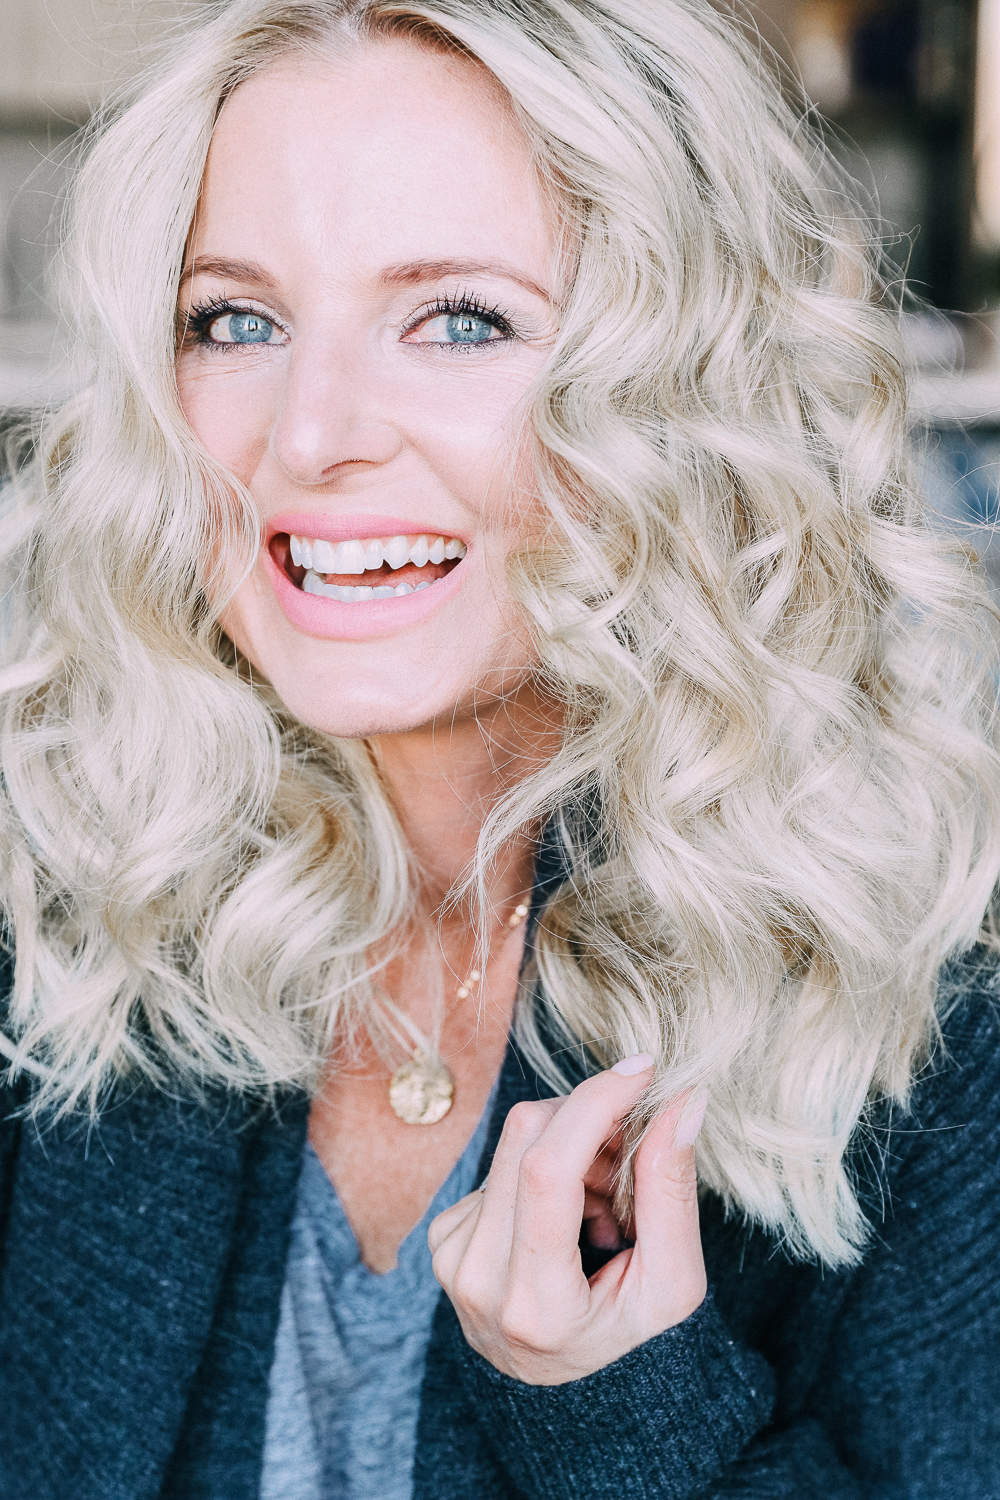 Curling your hair with a wand, step by step instructions by beauty blogger Erin Busbee with long blonde hair